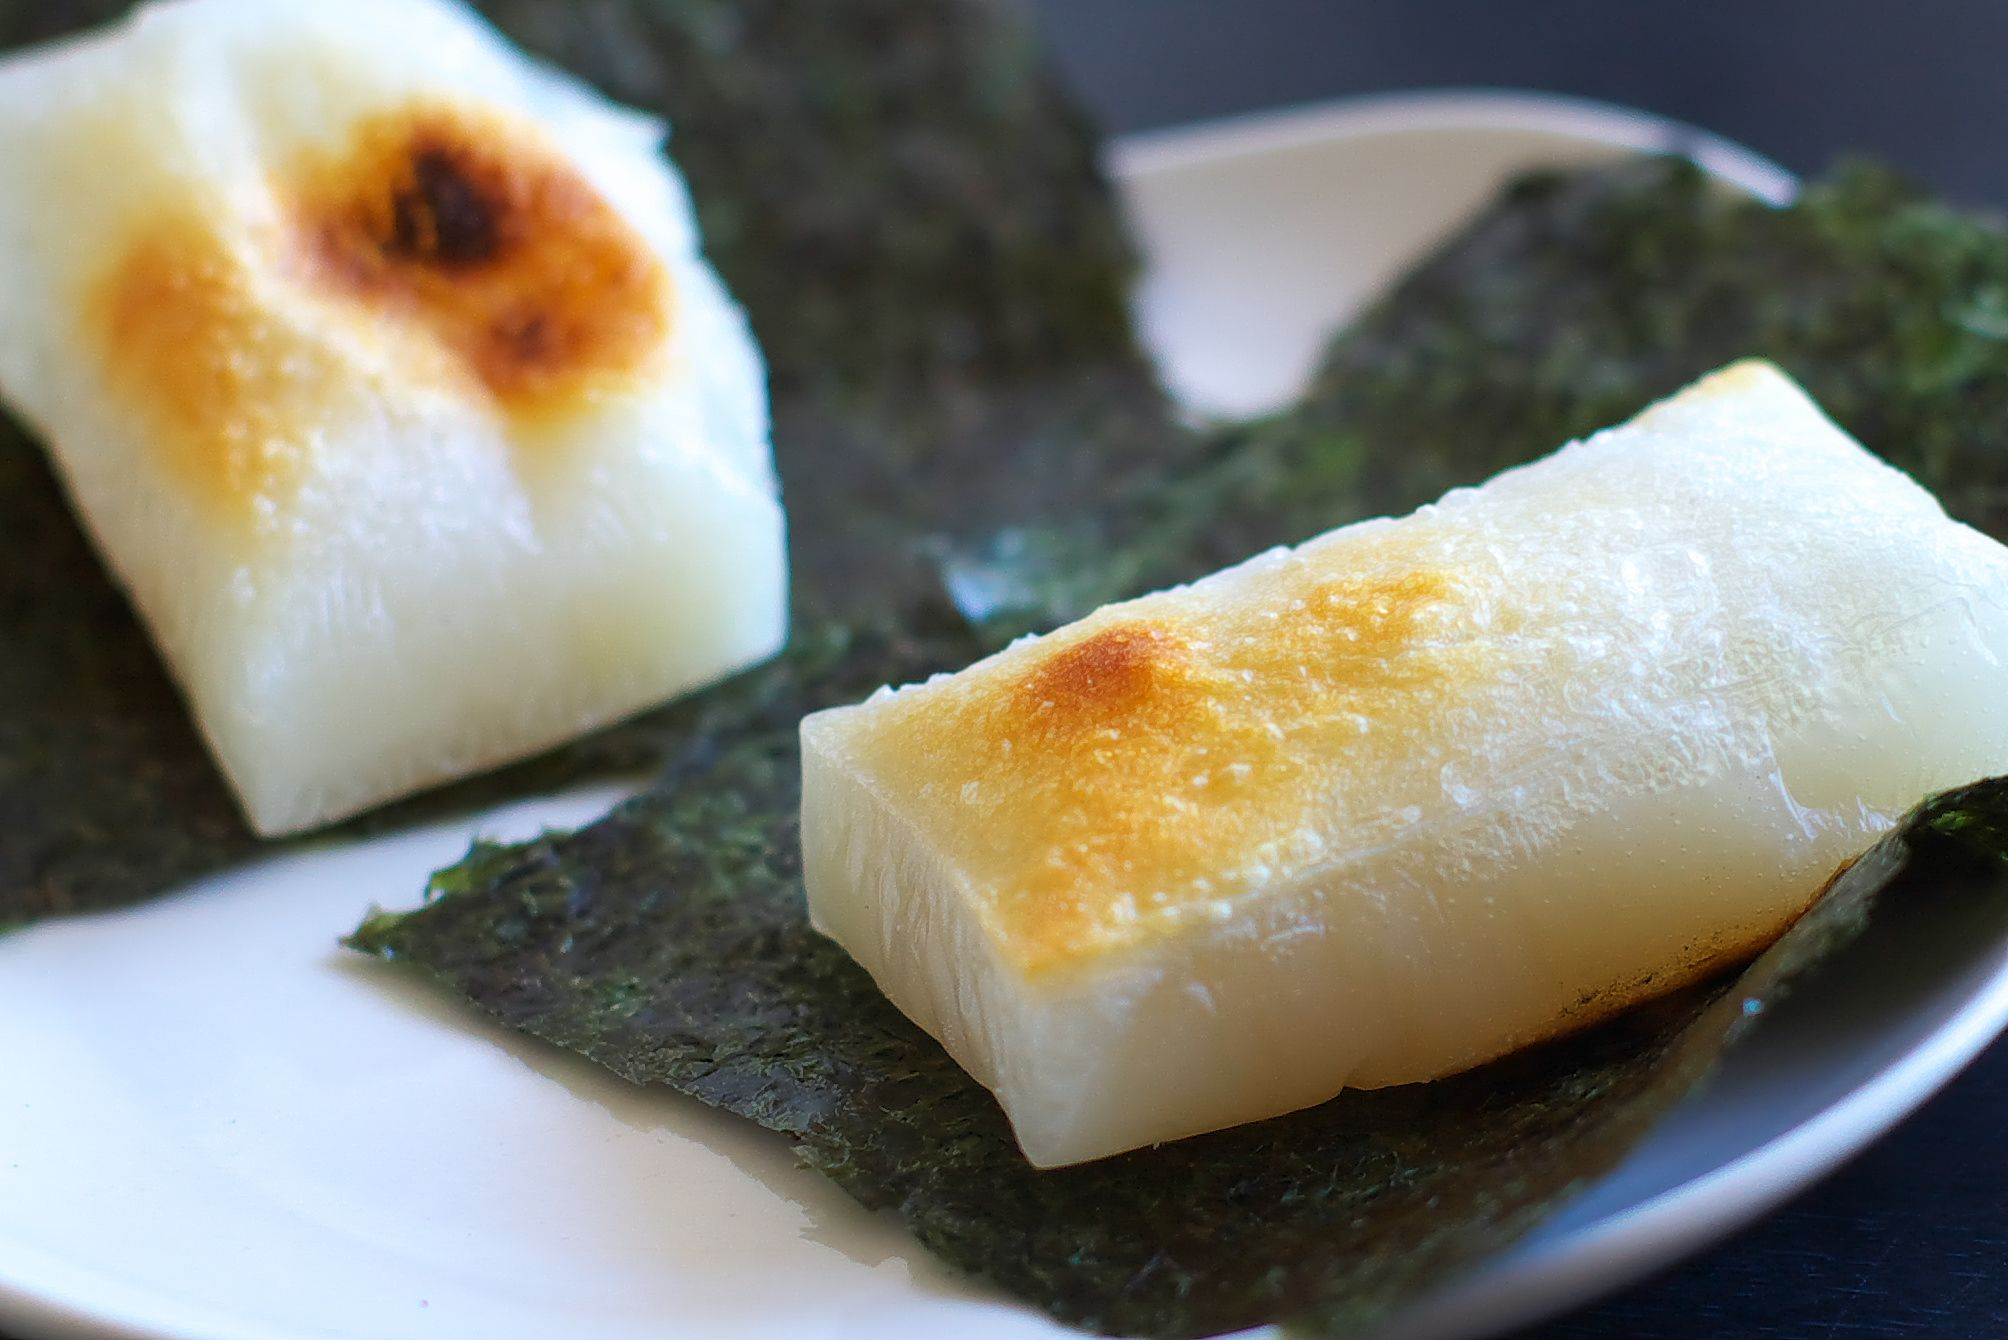 This is a Japanese rice cake.